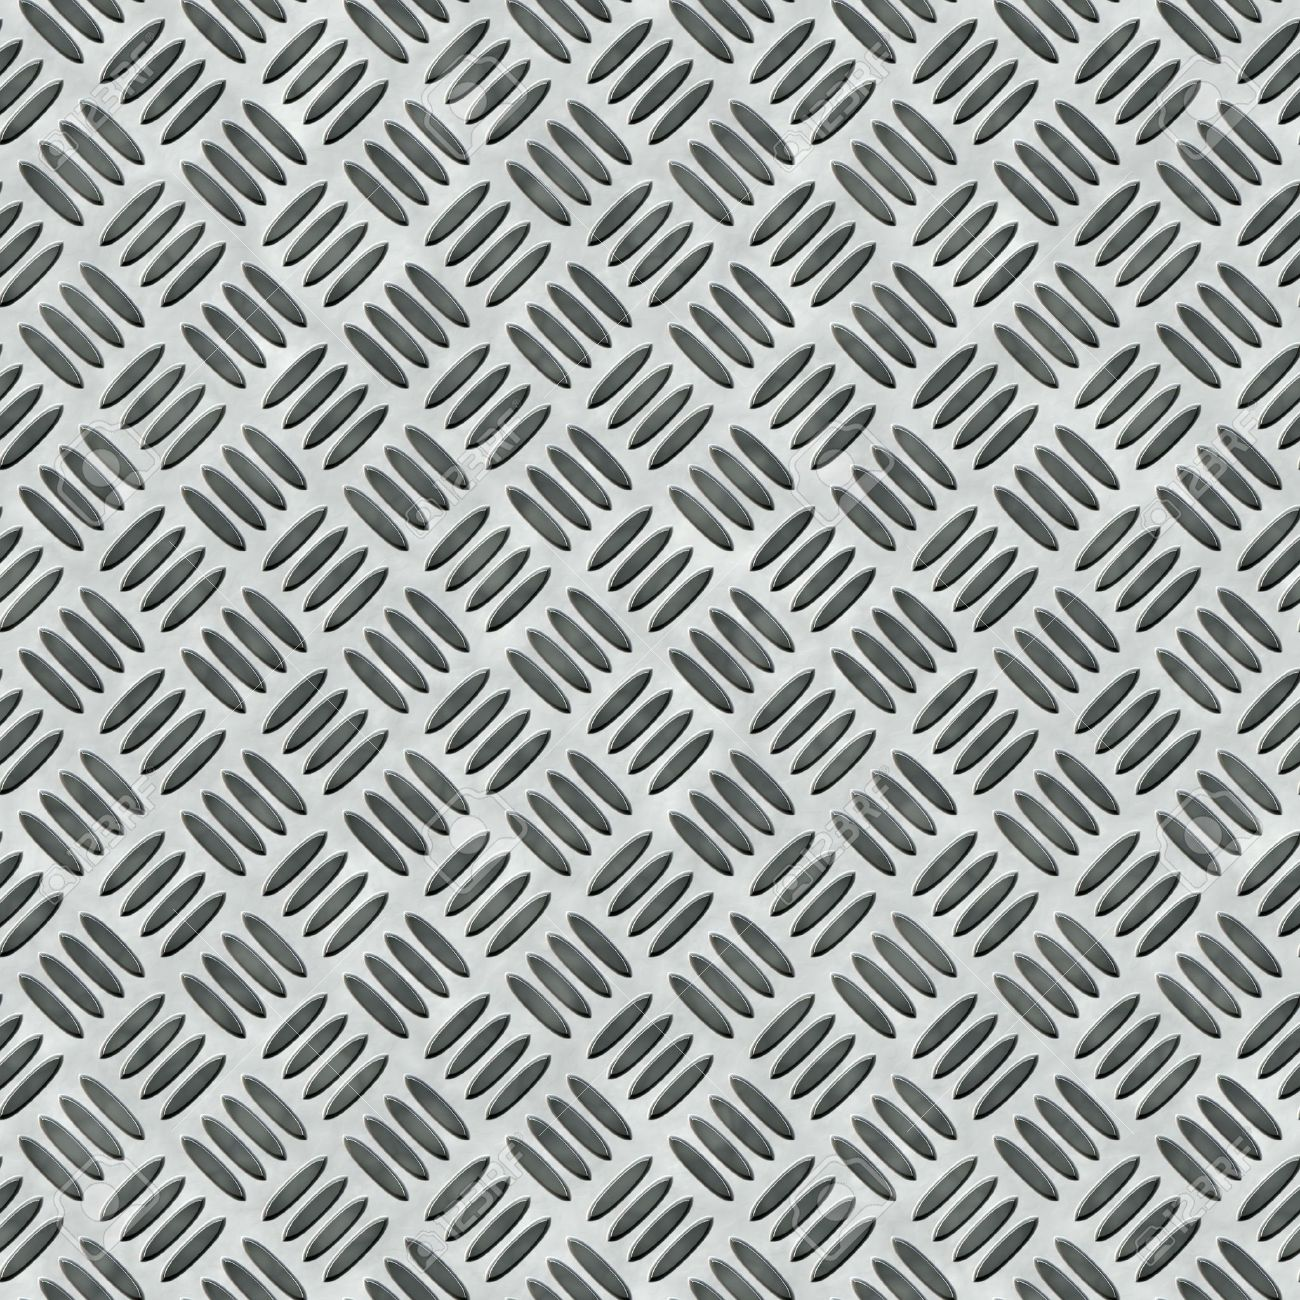 A diamond plate bumped metal texture that tiles seamlessly as a pattern in any direction. Stock Photo - 6741204